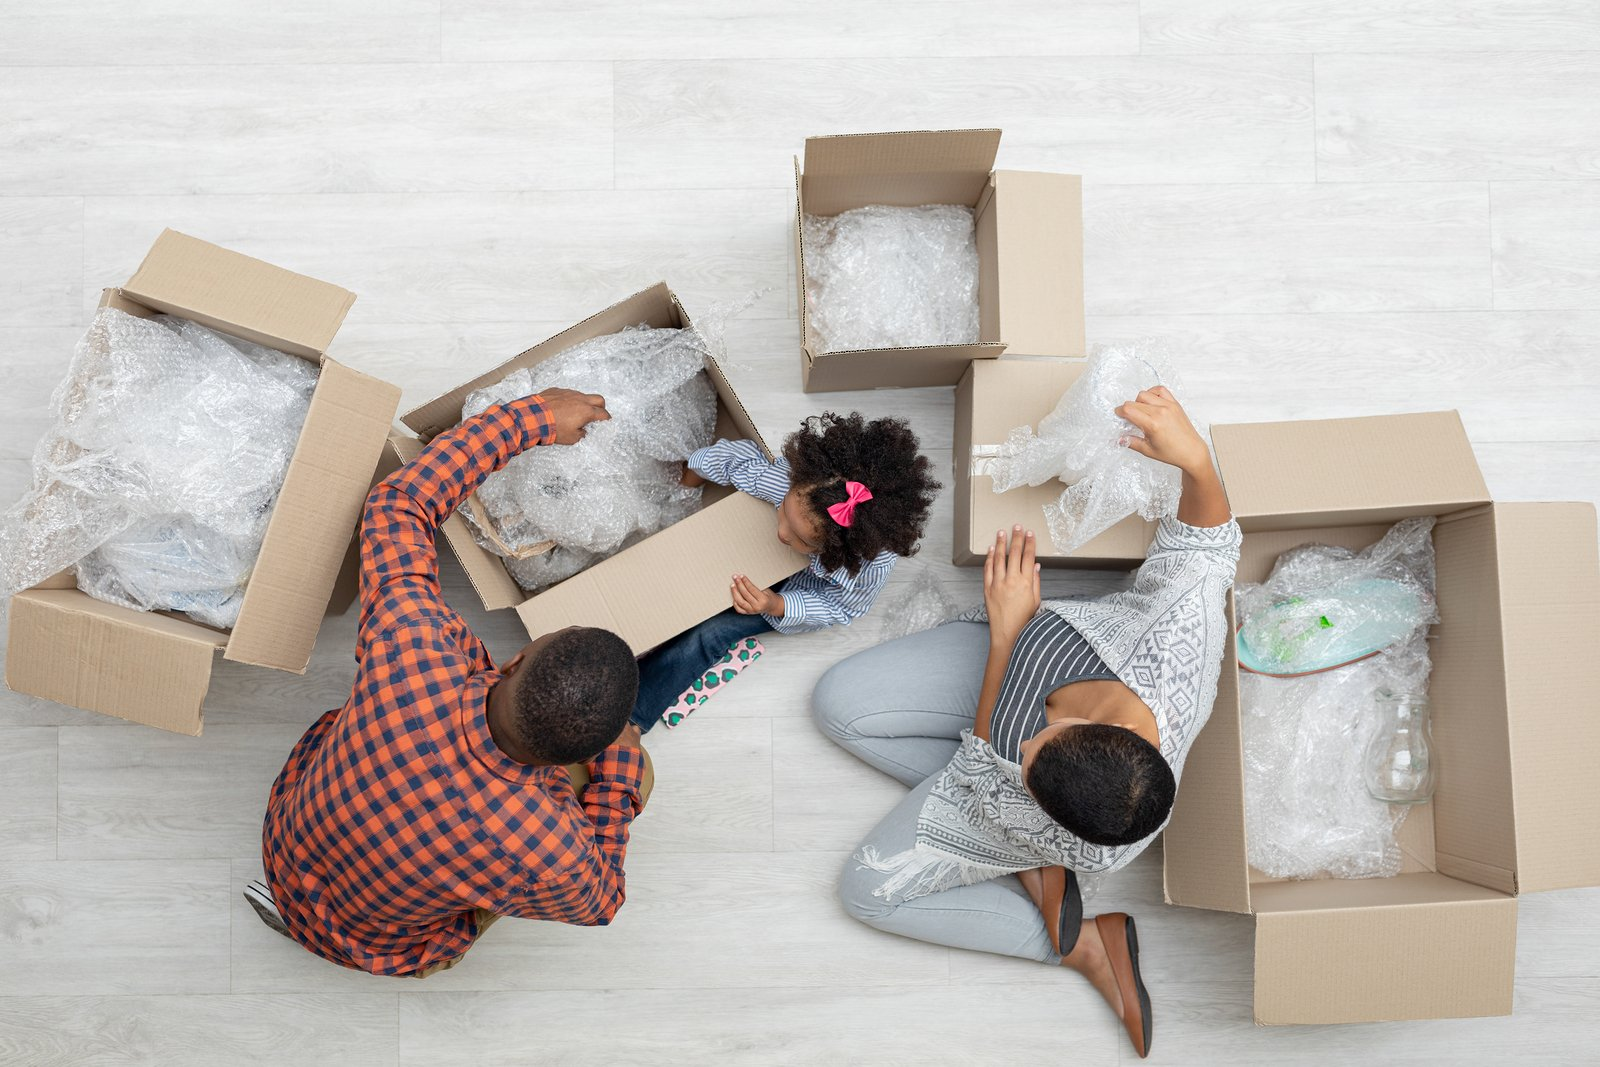 How To Pack Cardboard Boxes For Storage